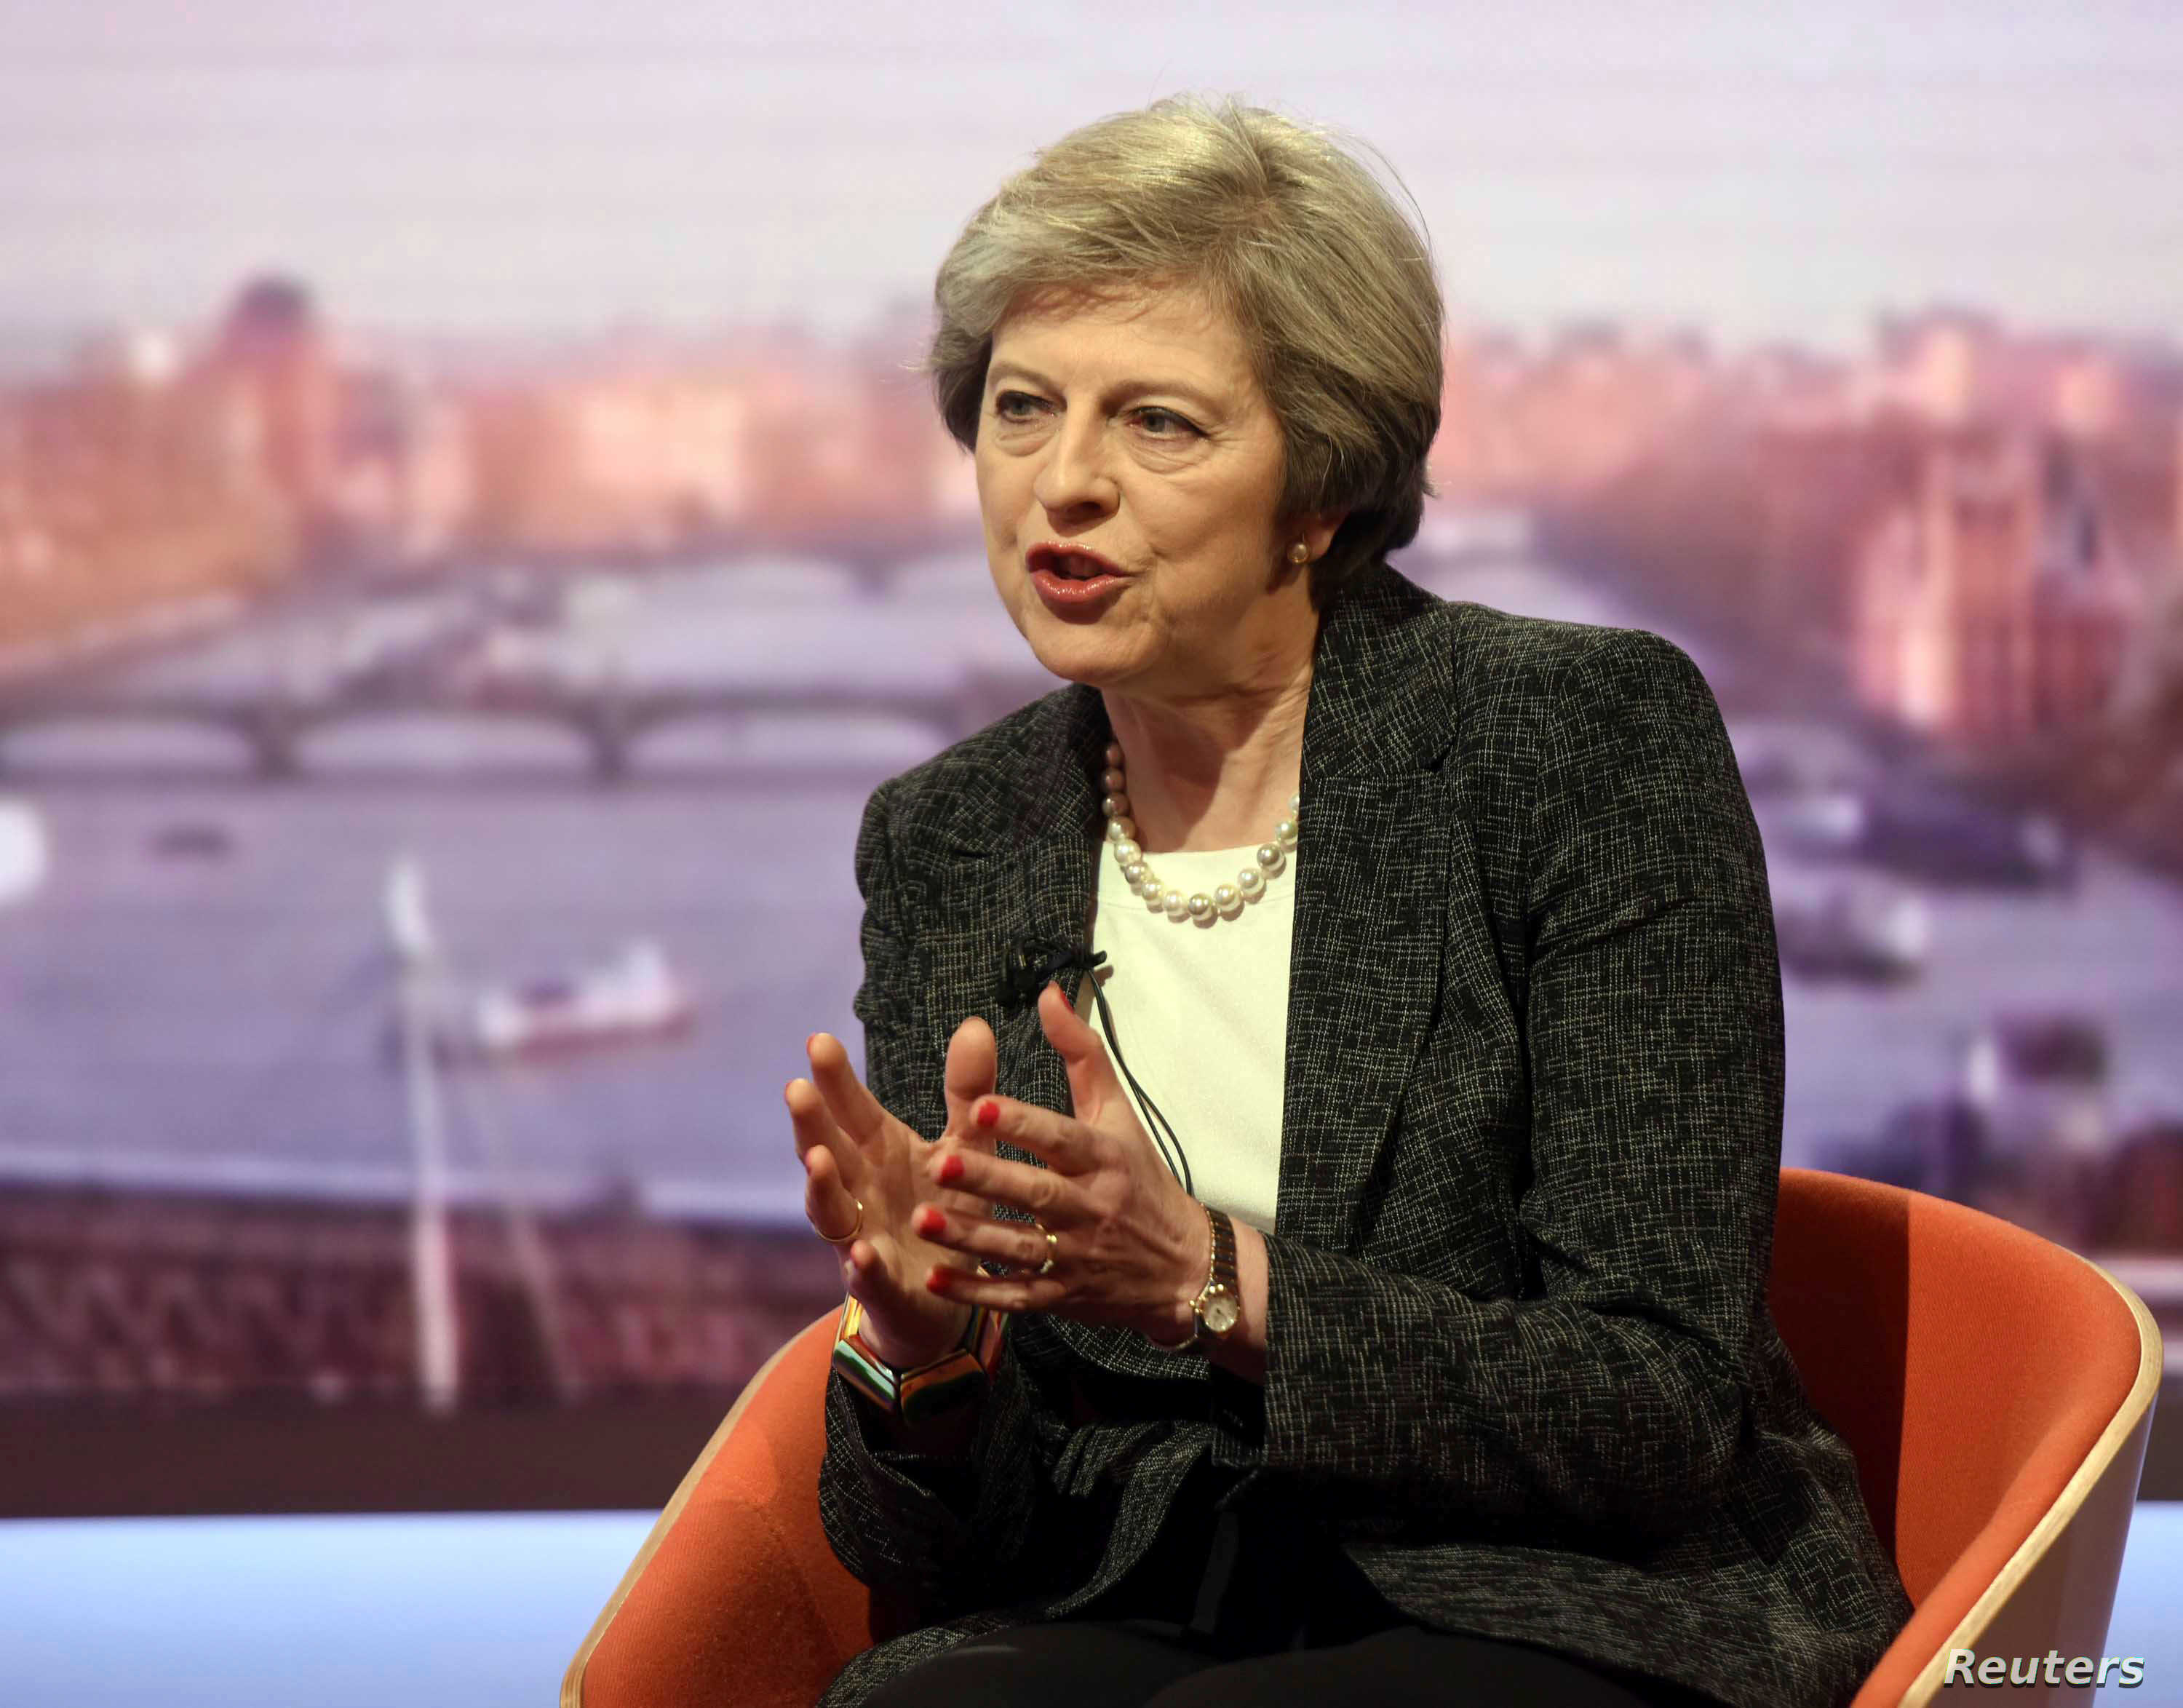 """Britain's Prime Minister Theresa May speaks on the BBC's """"The Andrew Marr Show"""" in this BBC photo in London, Jan. 22, 2017. In response to a British lawmaker, May said of her country, """"We do not sanction torture, we do not get involved with that, and"""